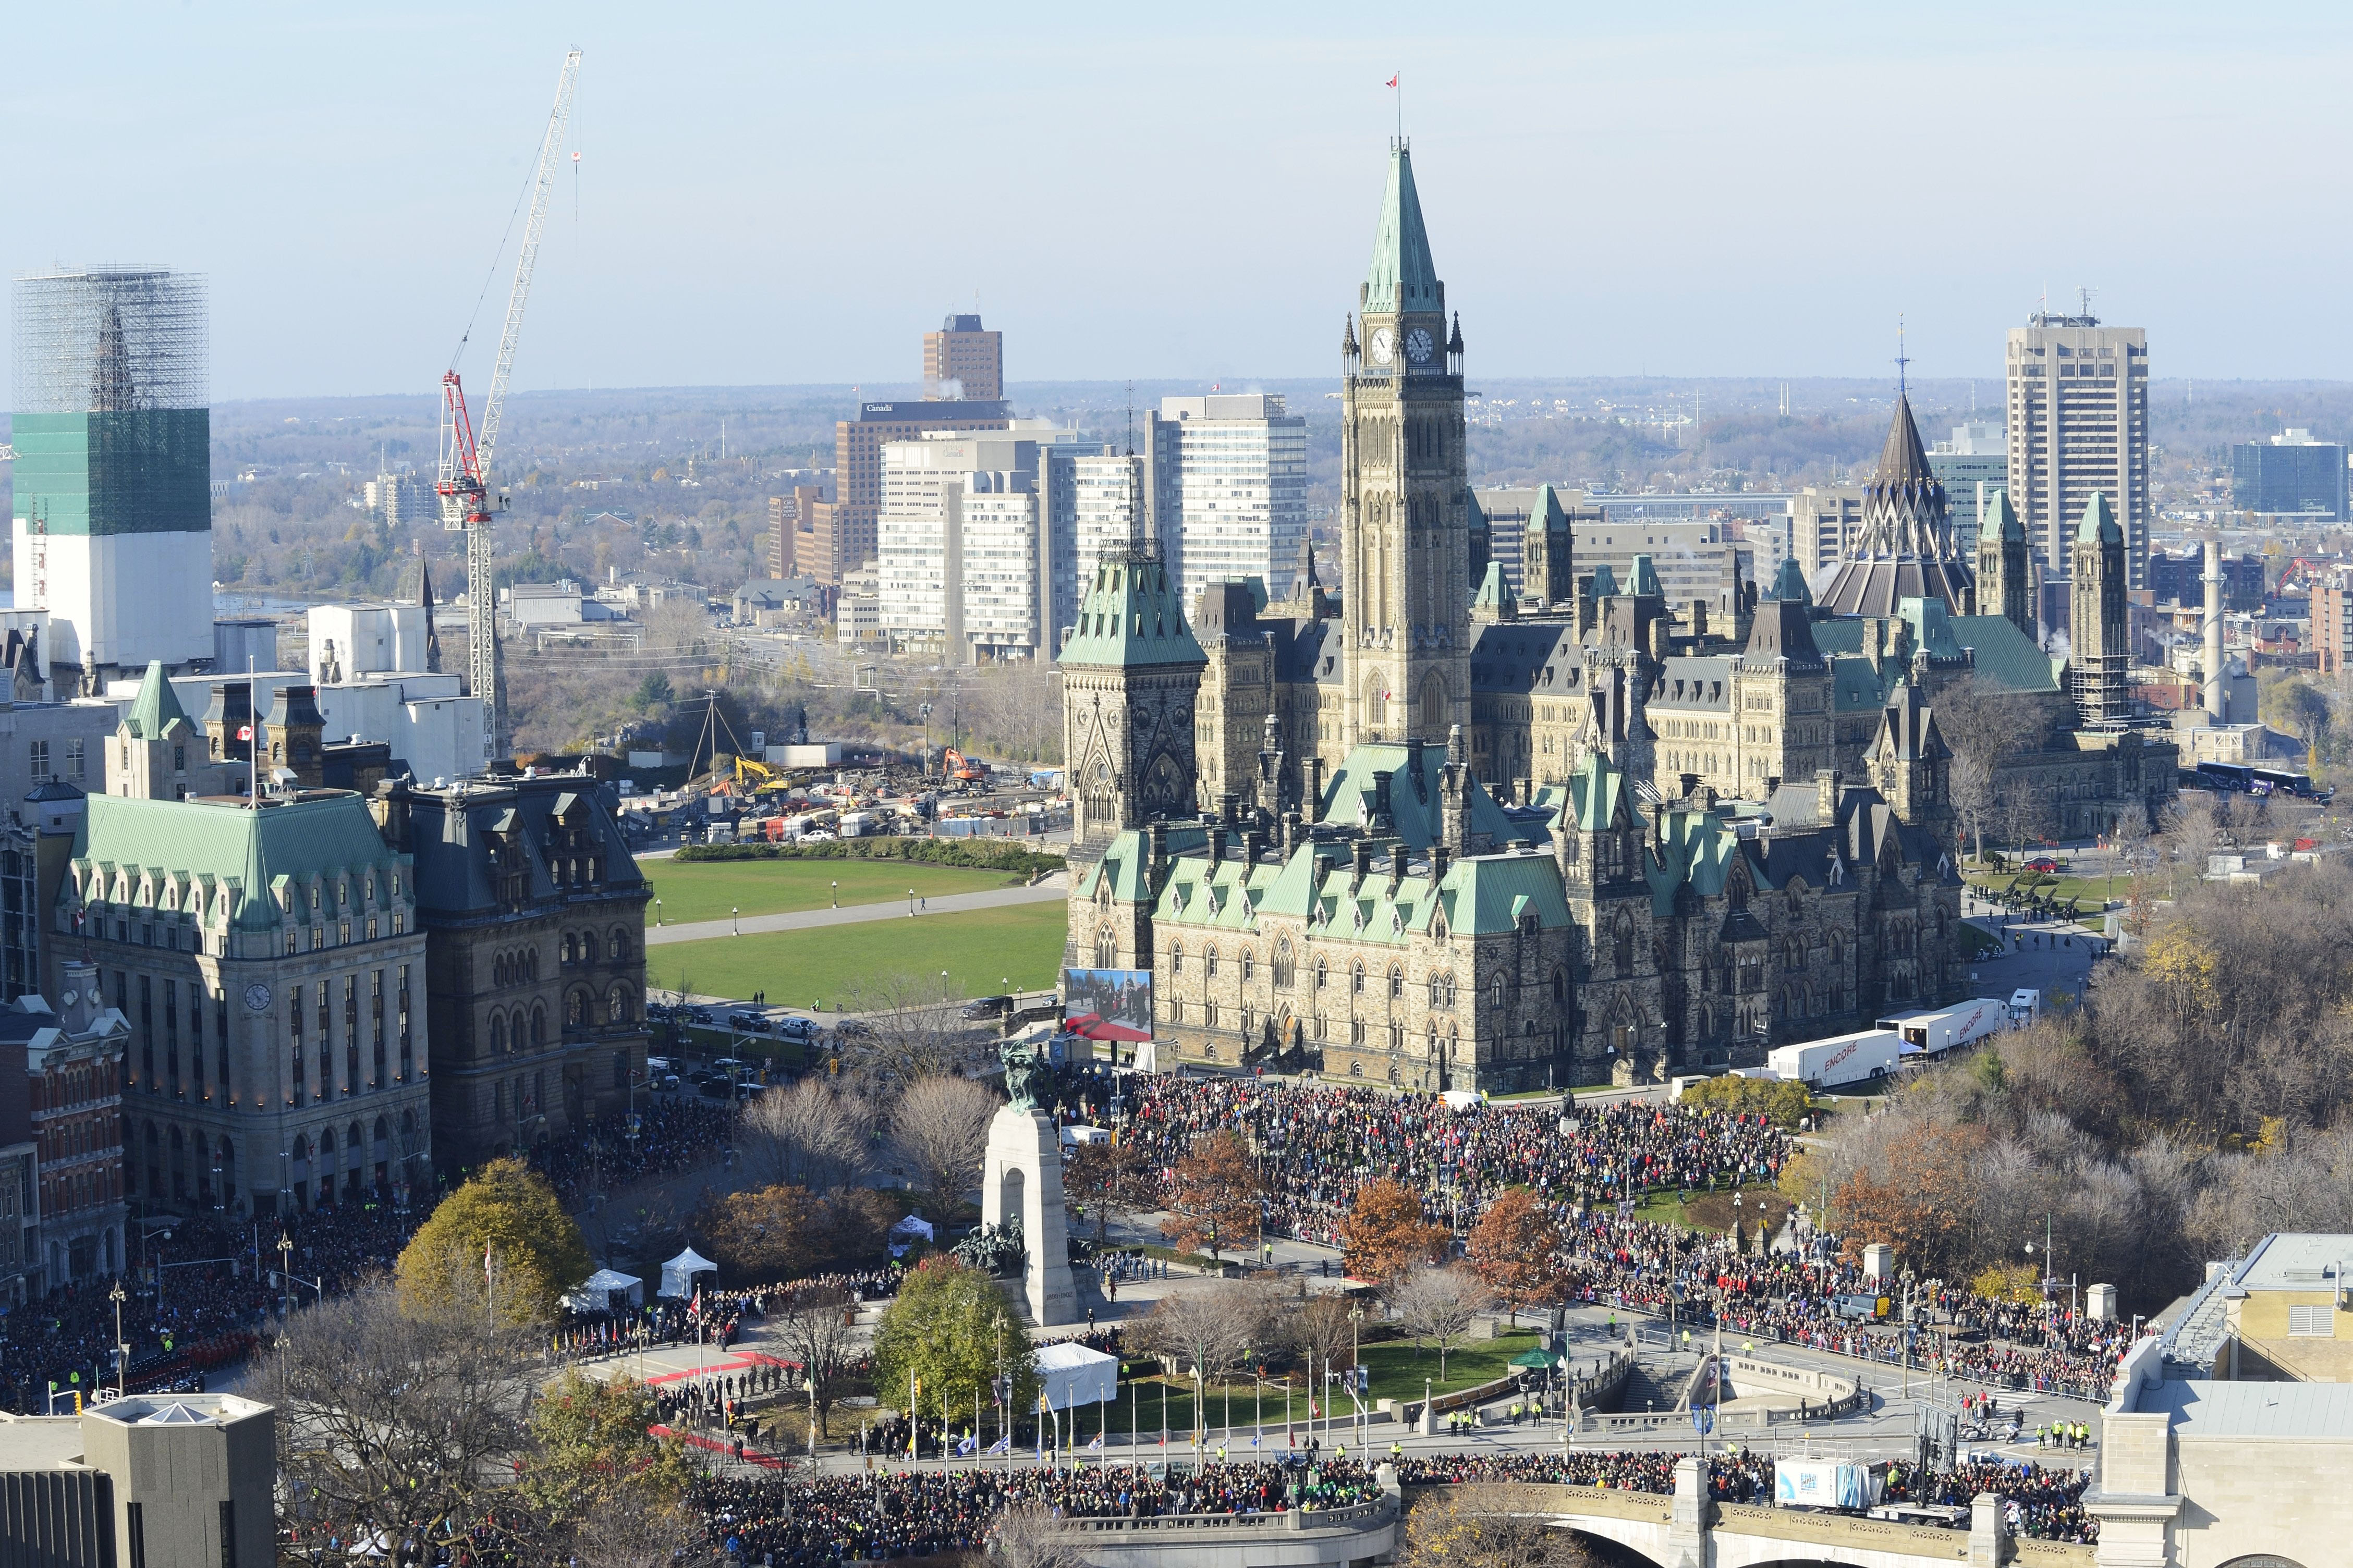 On November 11, 2014, National Remembrance Day Ceremony attendees surround the National War Memorial in downtown Ottawa, Ontario, and spill over onto Parliament Hill. An estimated 50,000 people turned out for the ceremony.